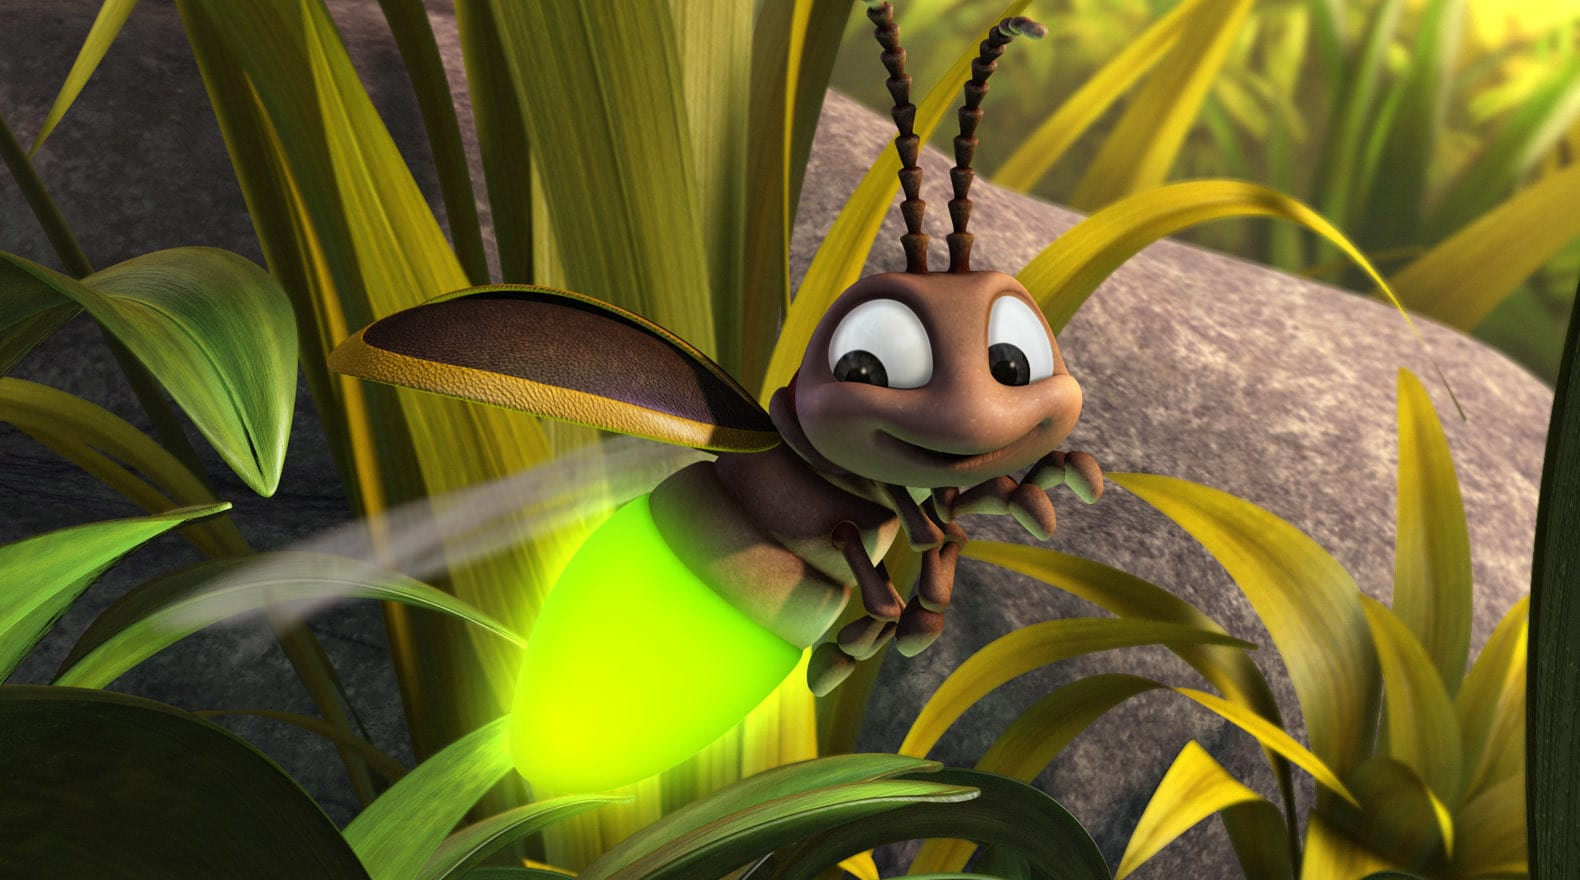 This firefly offers a helping hand, or light, whenever he can.